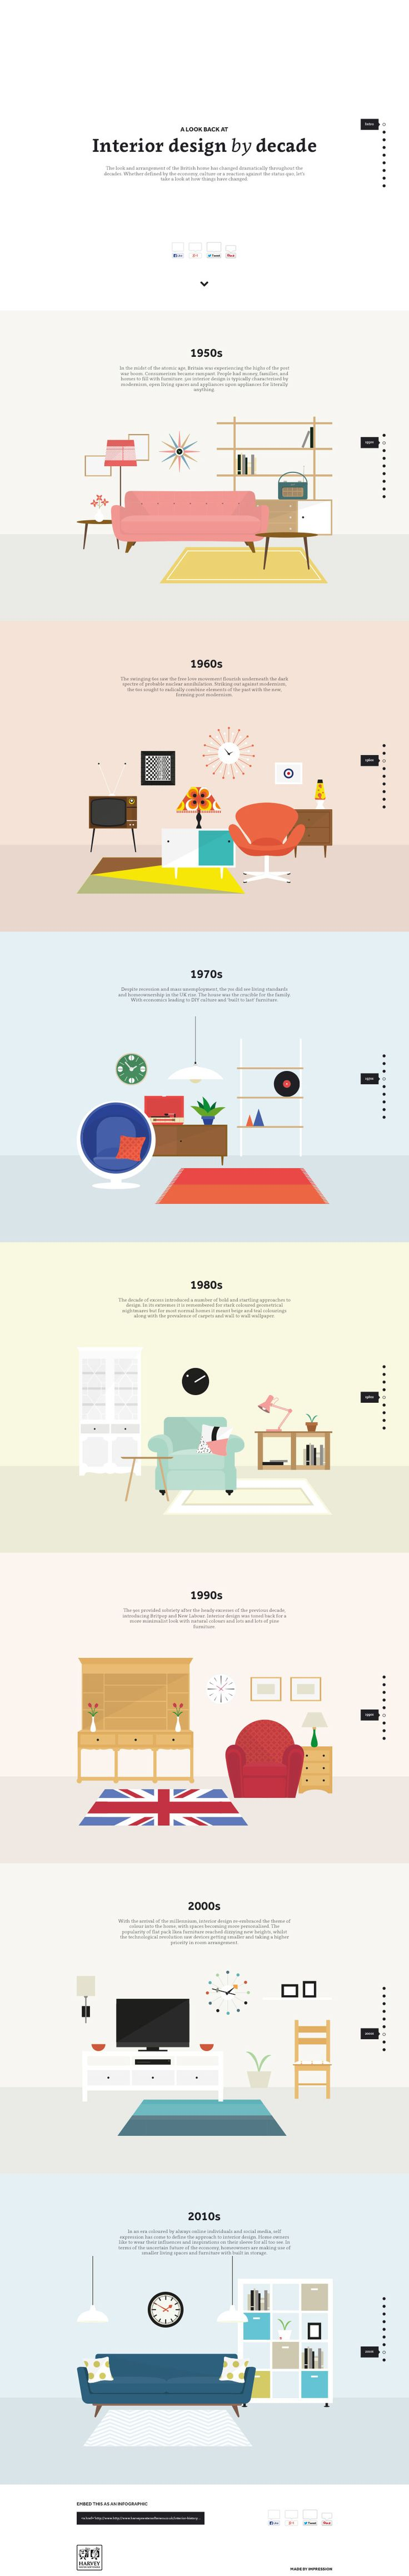 Do you remember how your house used to look like back in the nineties? This infographic gives you a look back at the interior design trends of the British home throughout the decades.